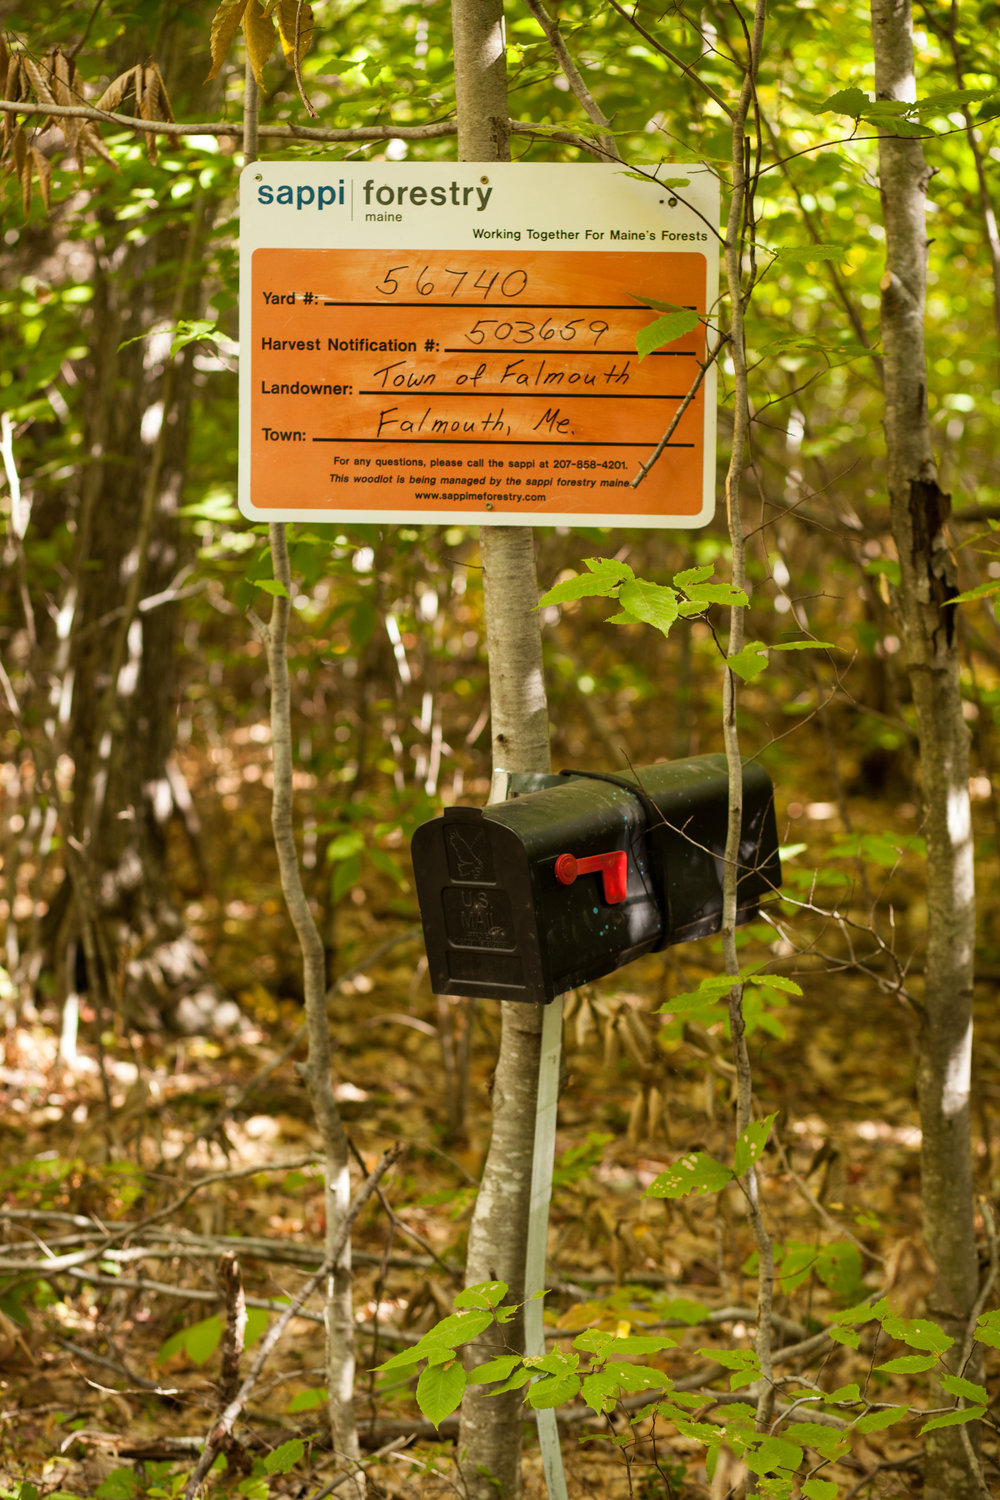 North Falmouth Sappi Forest_100217-382.JPG